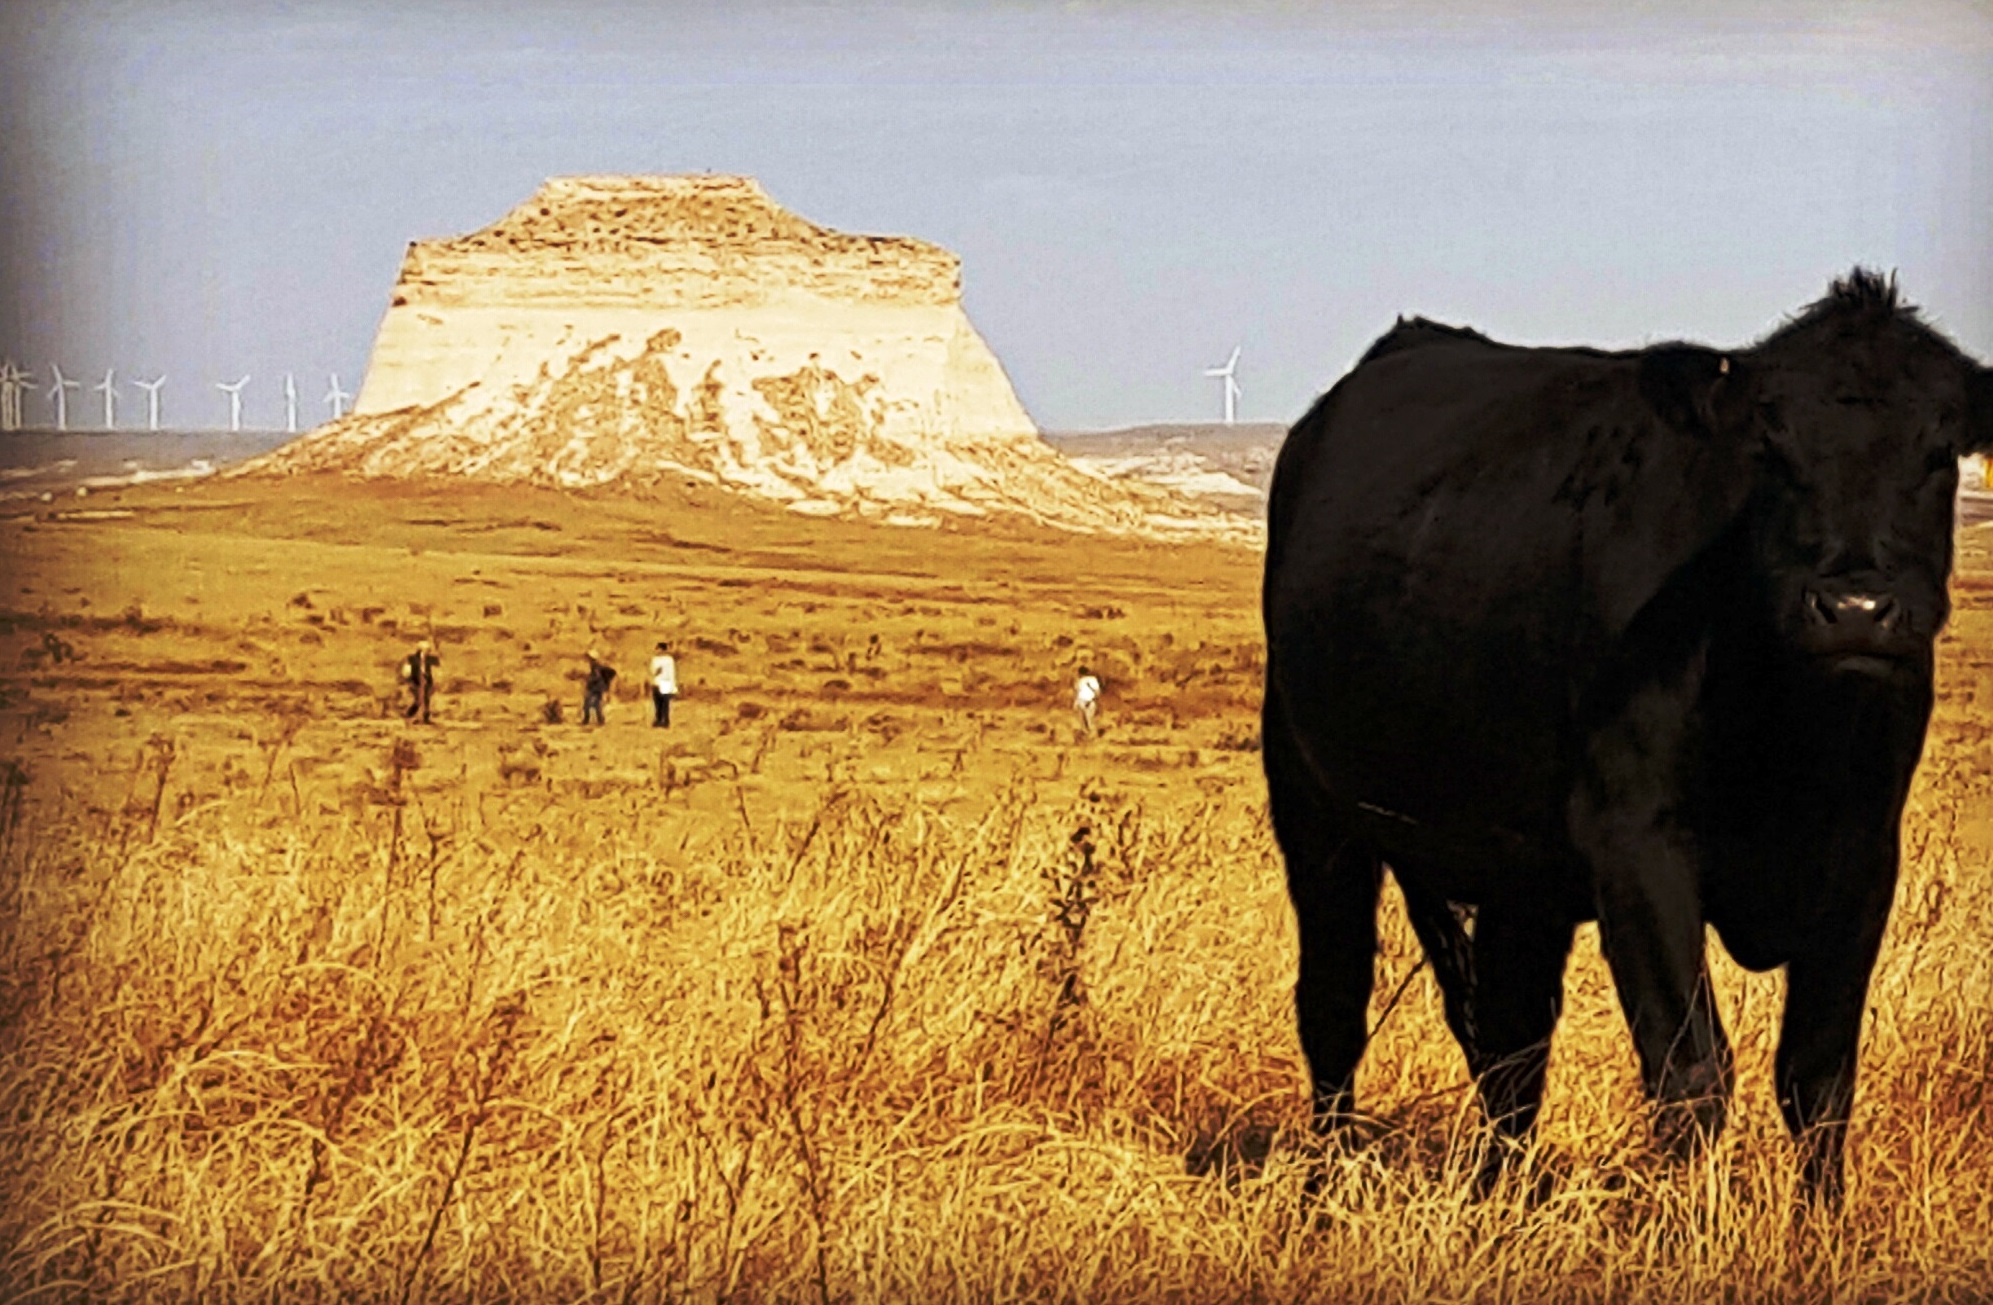 An image of the Pawnee National Grasslands; a large black cow is in the forefront wiht a majectic butte in the background.